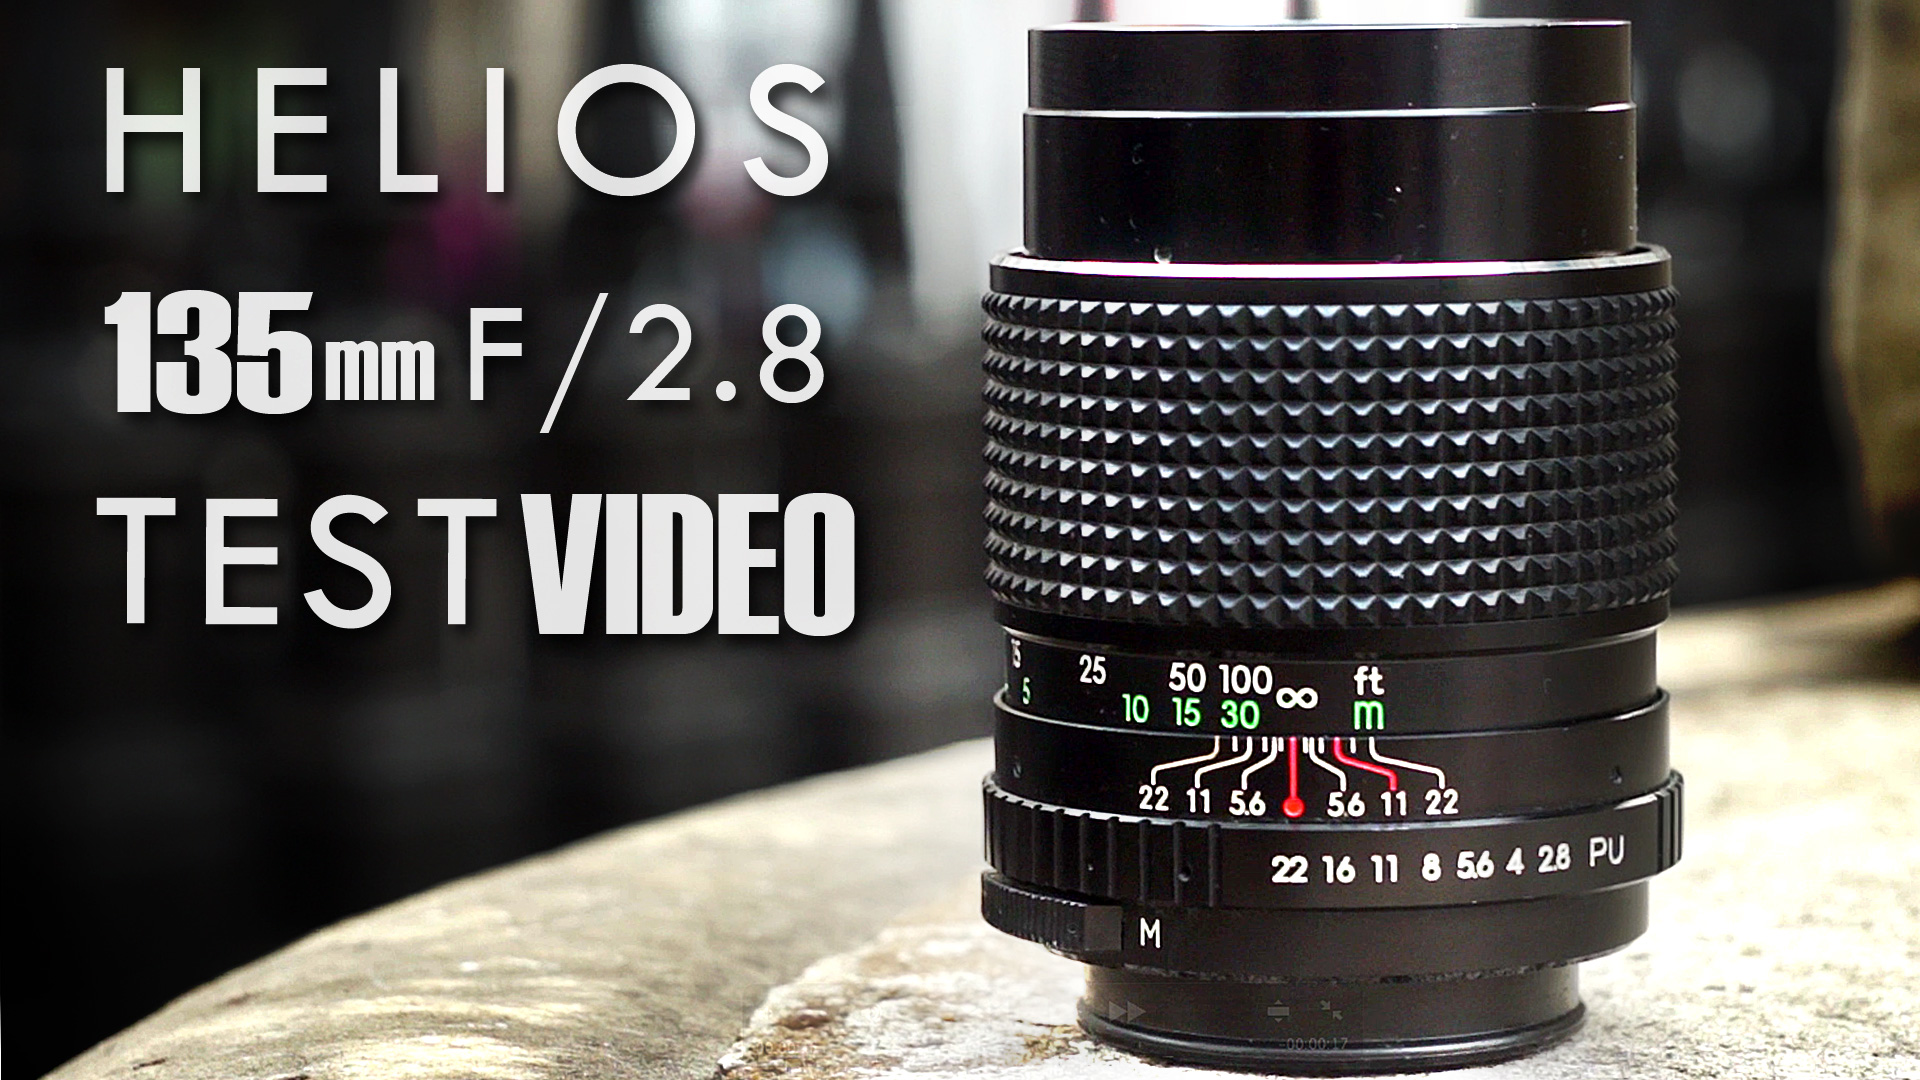 HELIOS 135mm F/2.8 TEST VIDEO